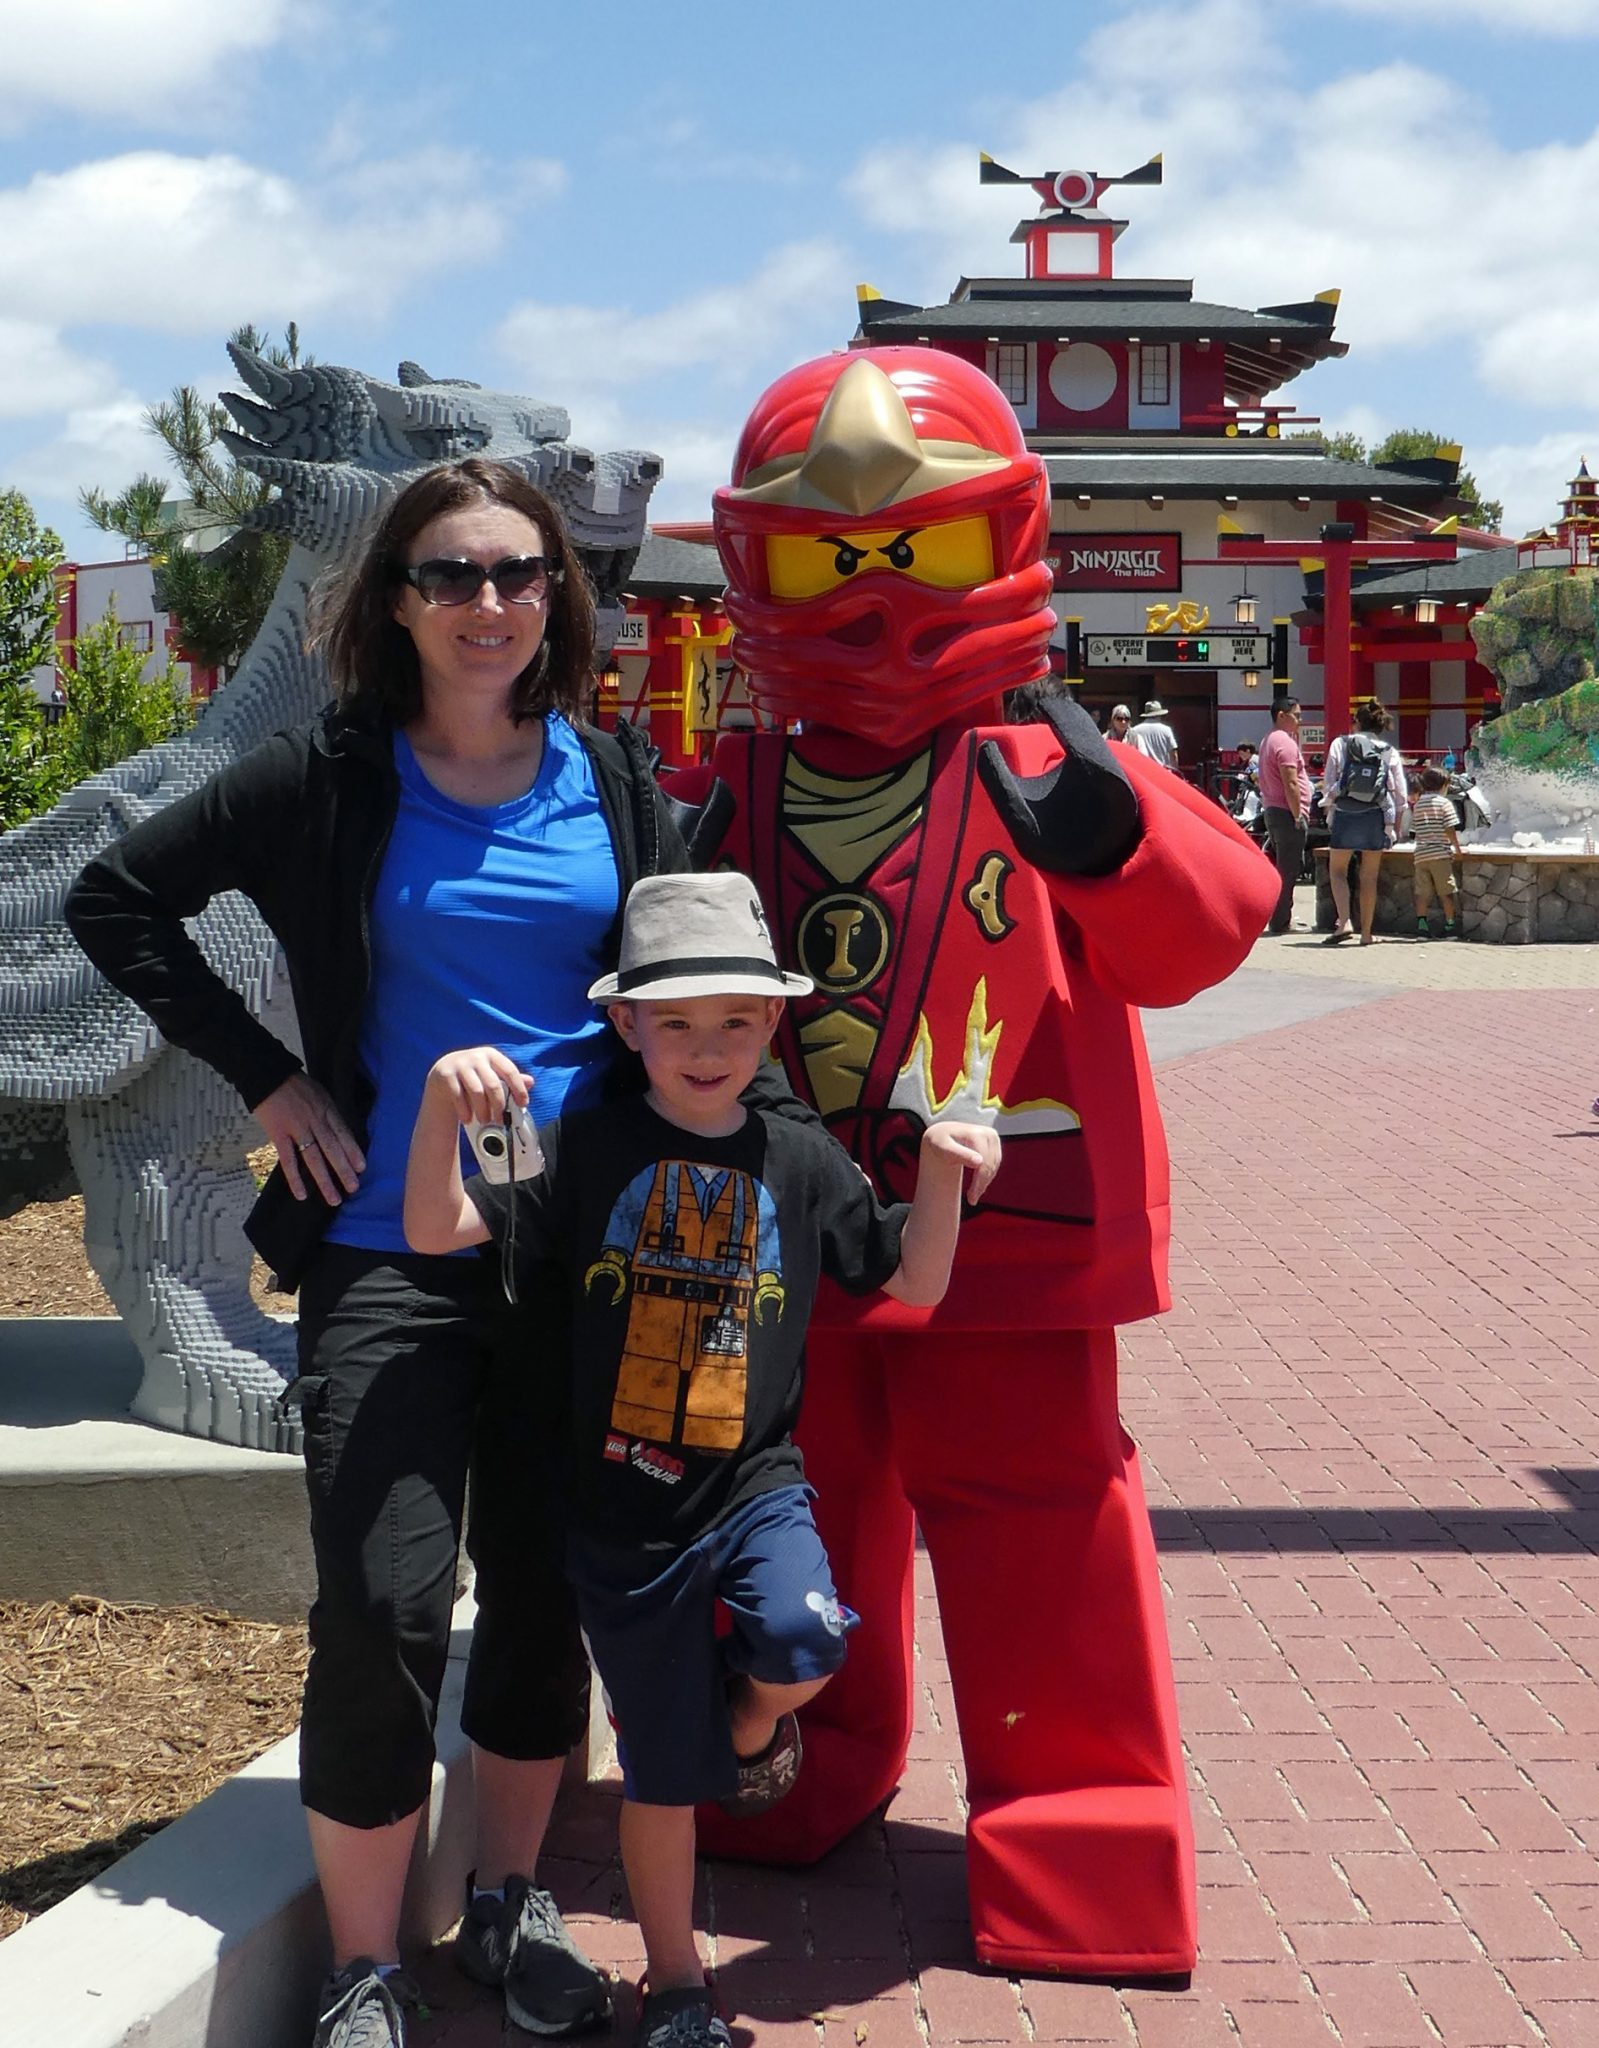 Ninjago World at LEGOLAND California